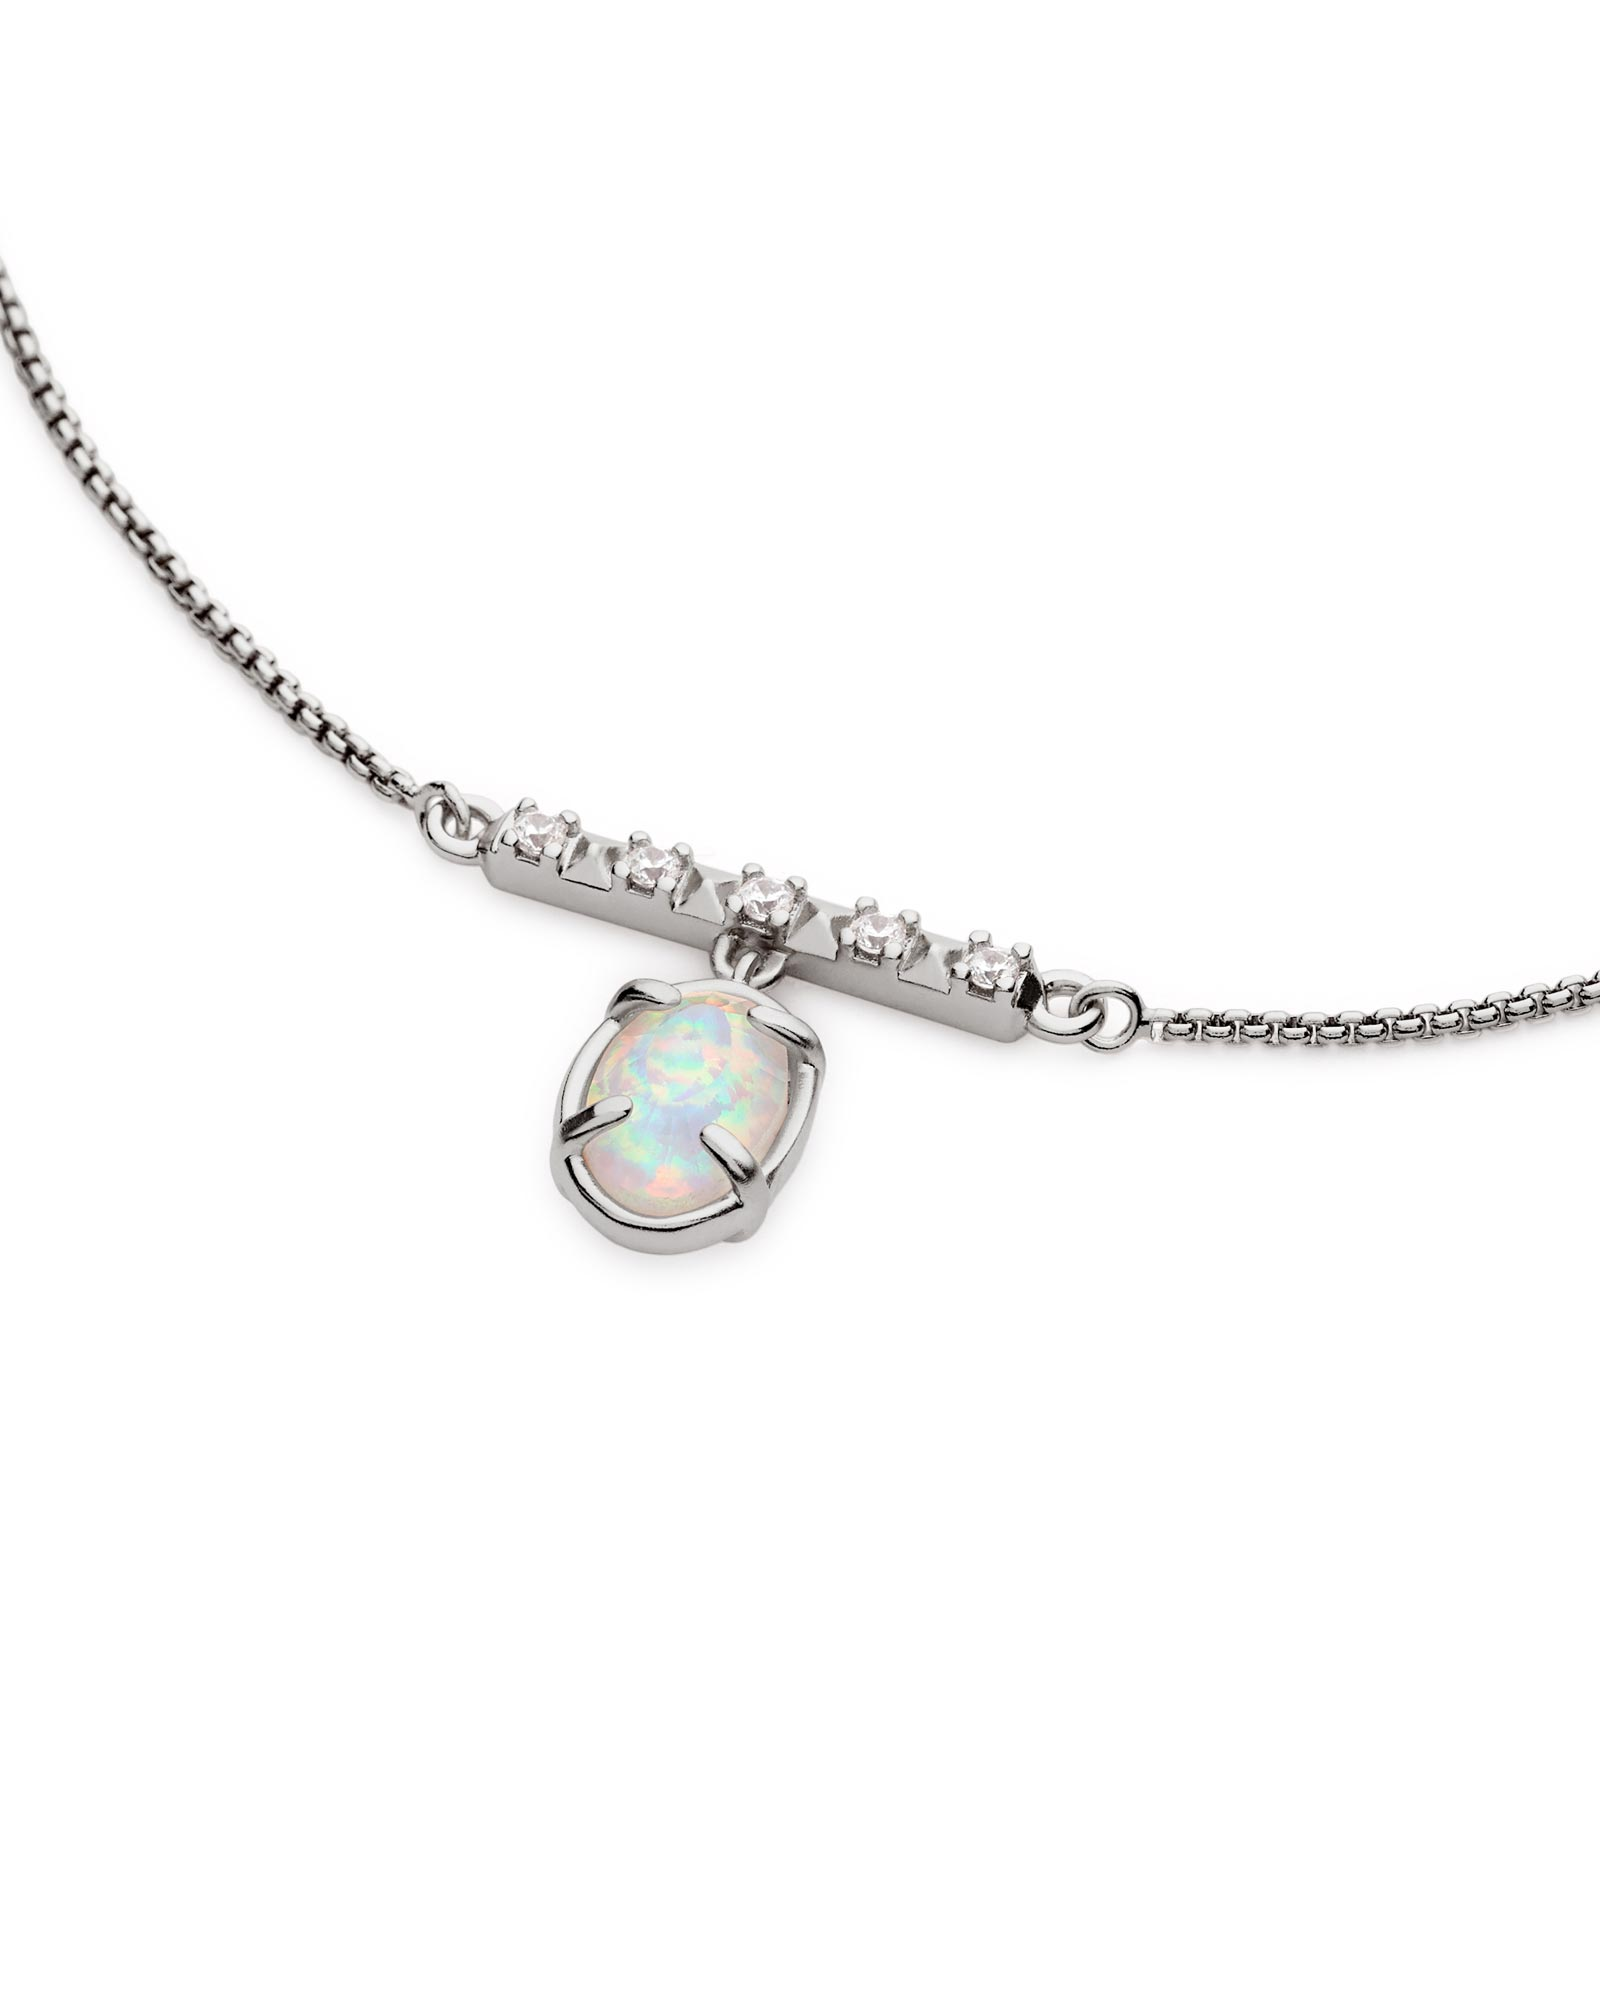 Fischer Pendant Necklace in Antique Silver